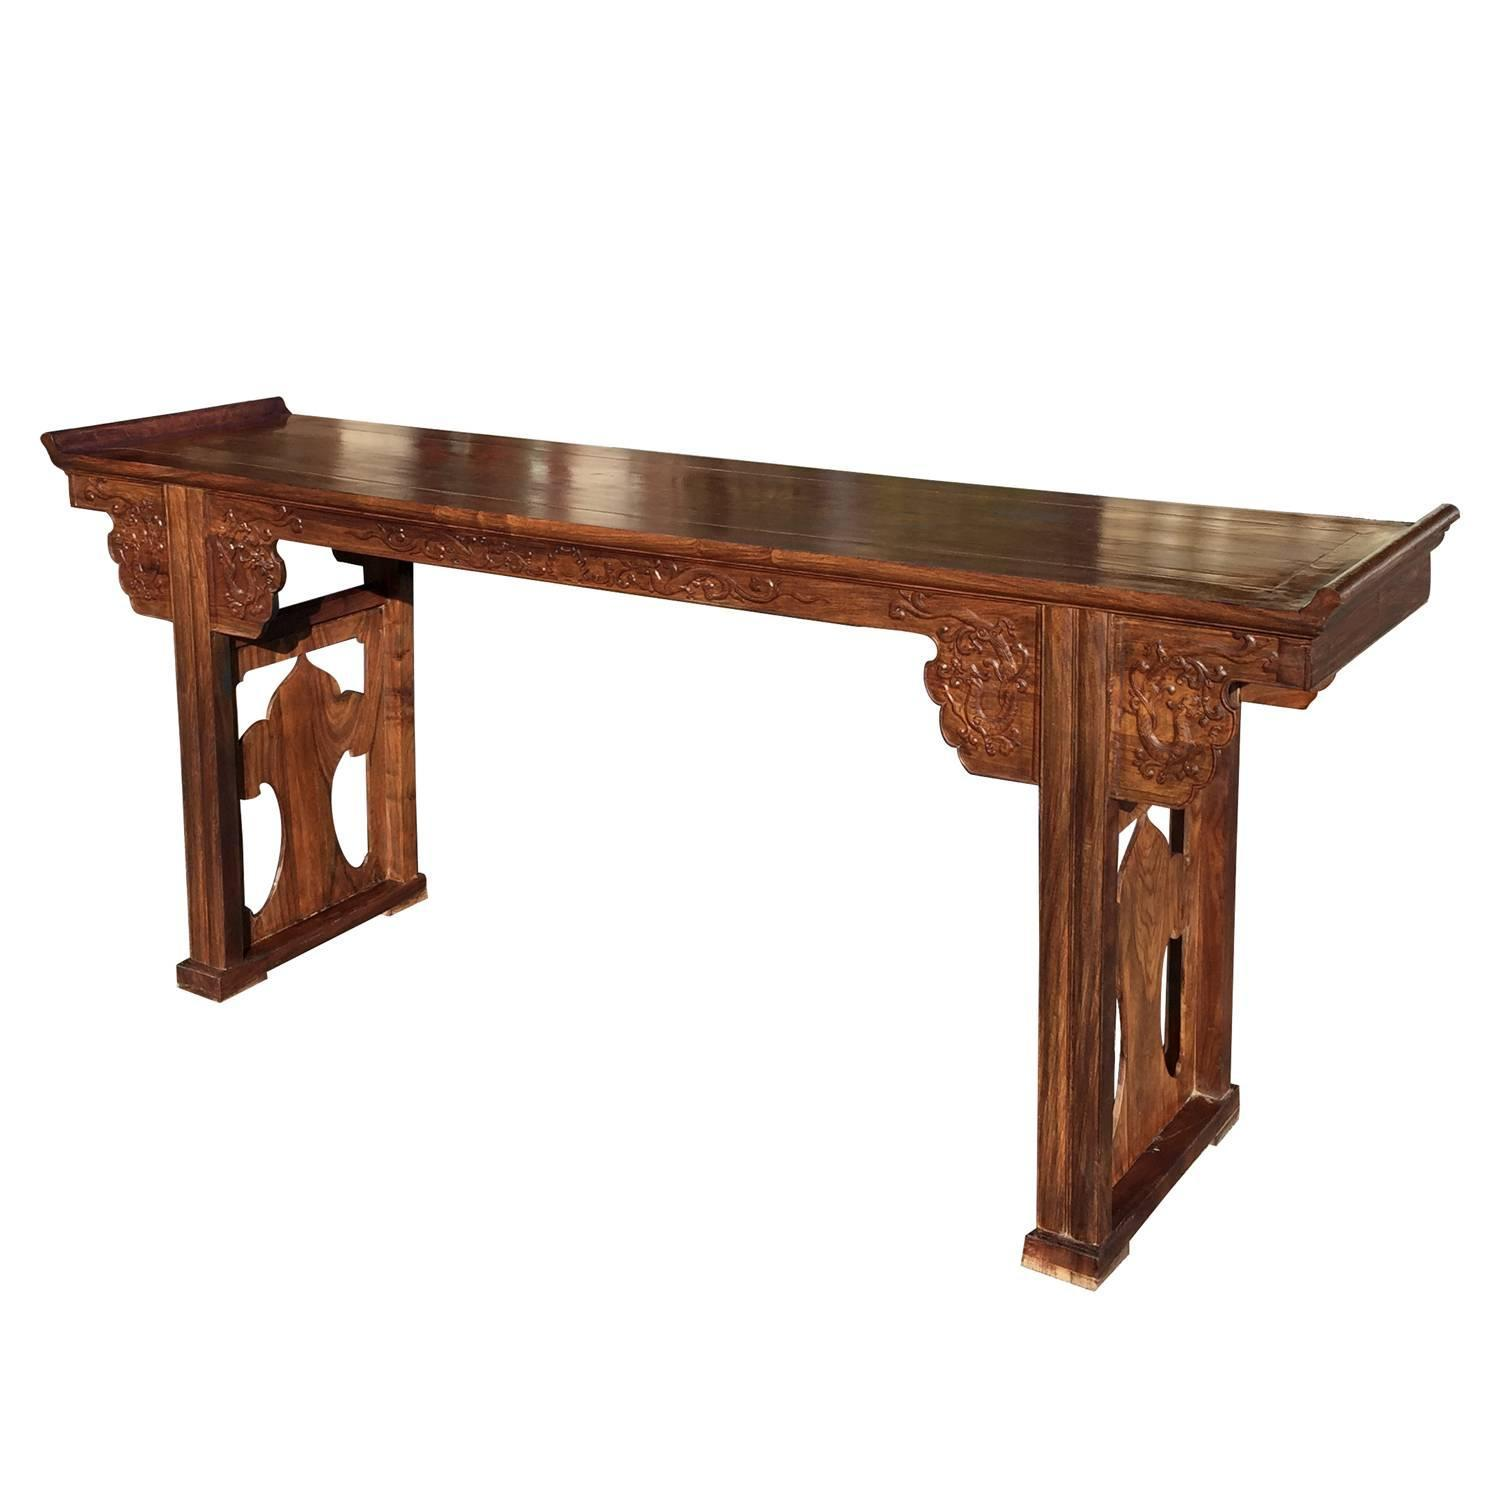 Family Altars For Sale: Fine Chinese Huanghuali Wood Altar Table For Sale At 1stdibs